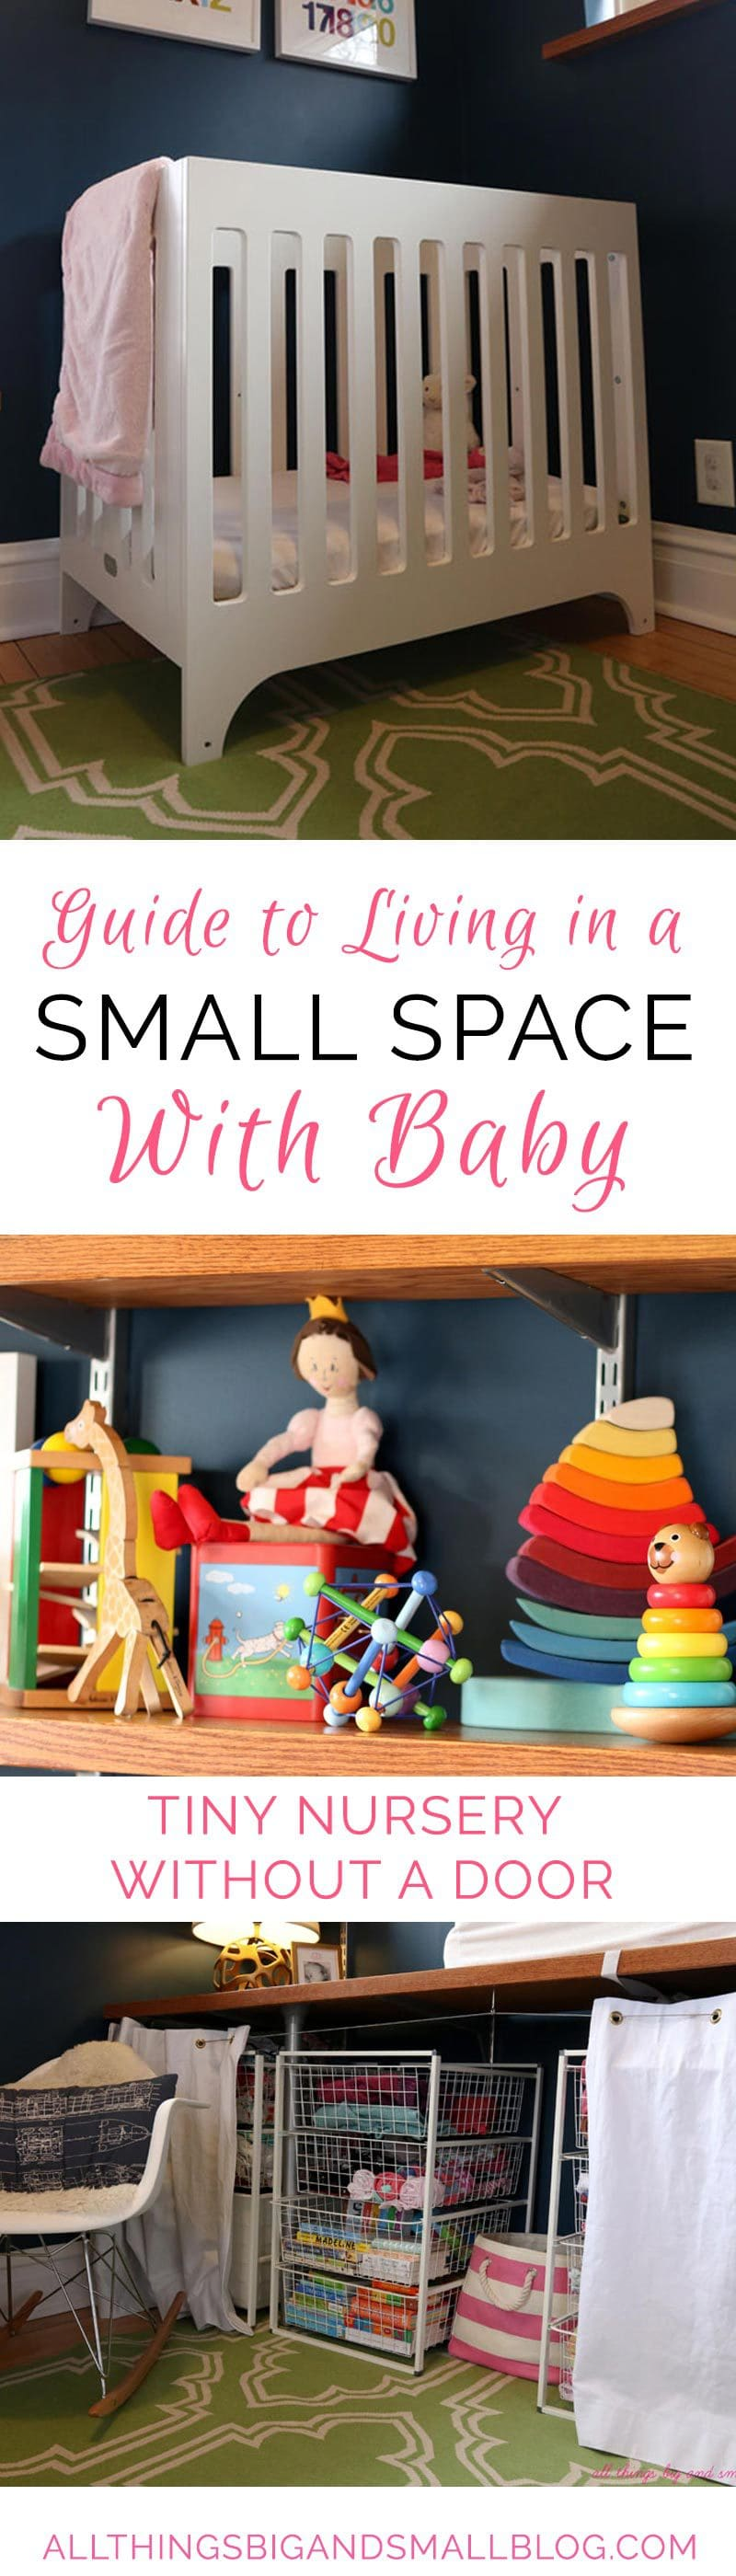 How To Live in a Small Space With Kids | Small Space With Baby | Small Nursery | Small Apartment With Kids | Small Space With Family | All Things Big and Small Blog